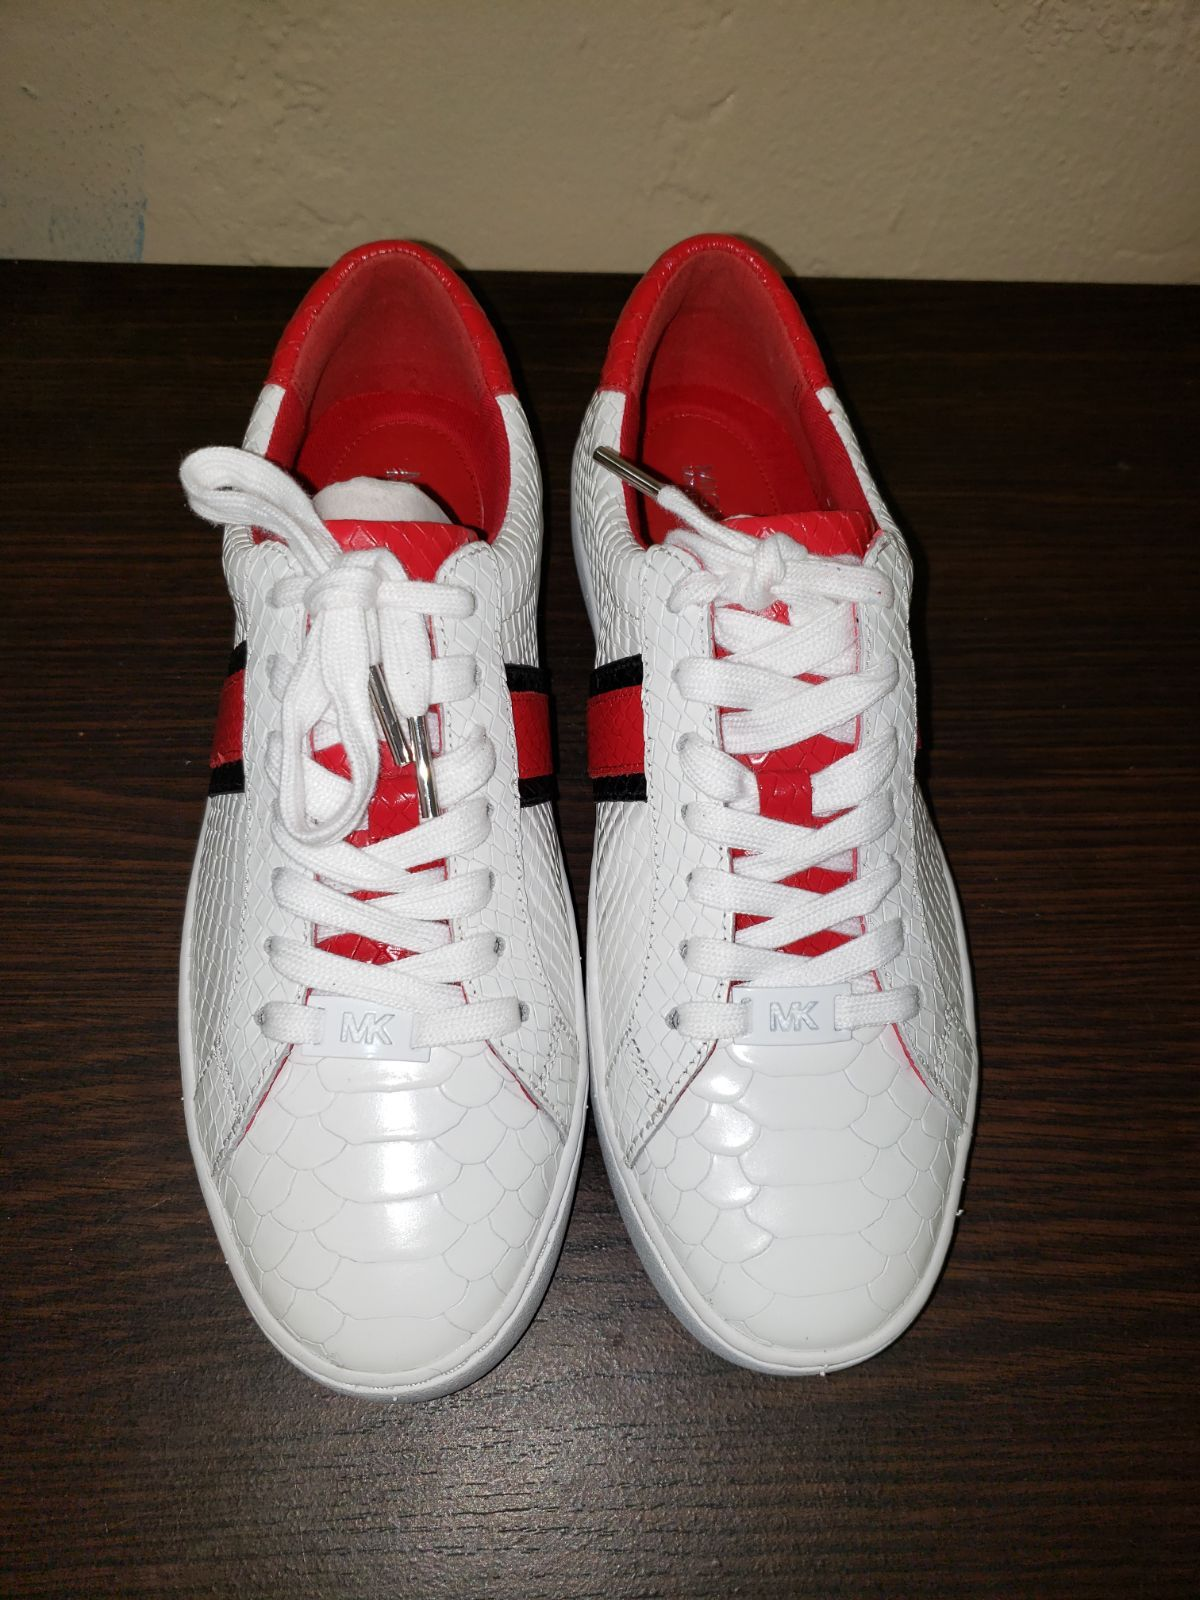 Michael Kors red and white mk sneakers